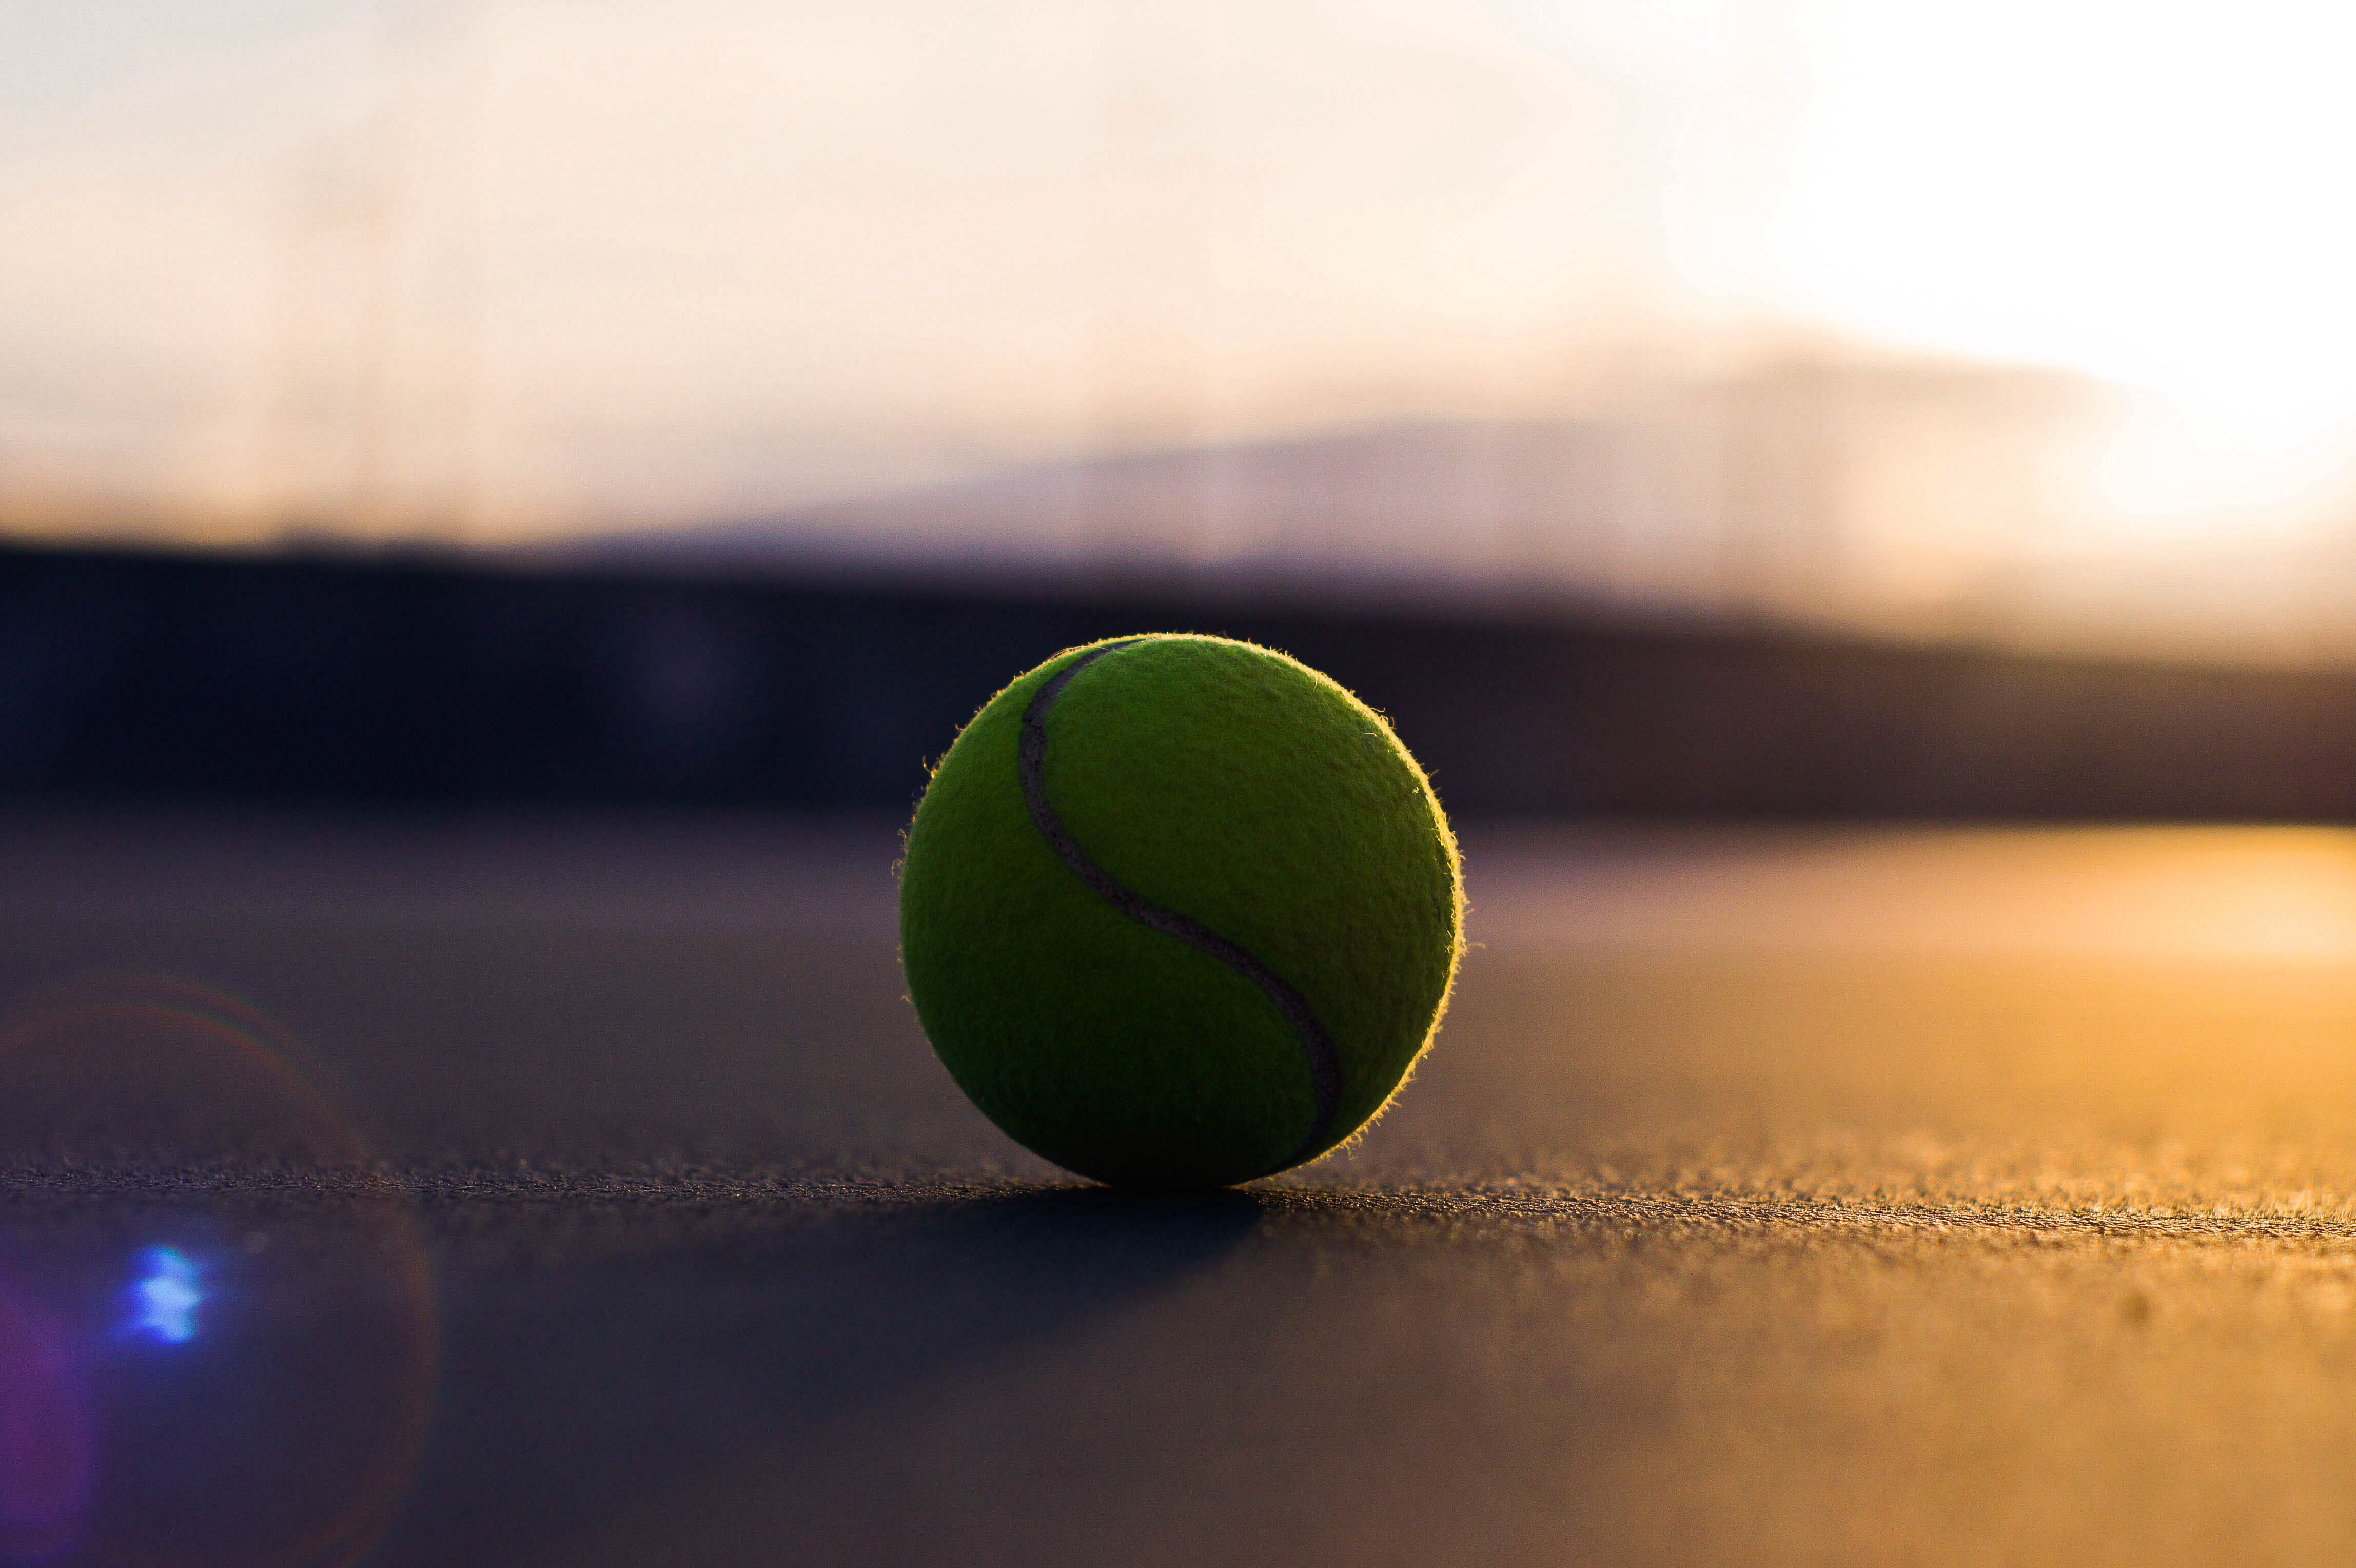 Pin By Julia Peterson On Tennis Anyone With Images Tennis